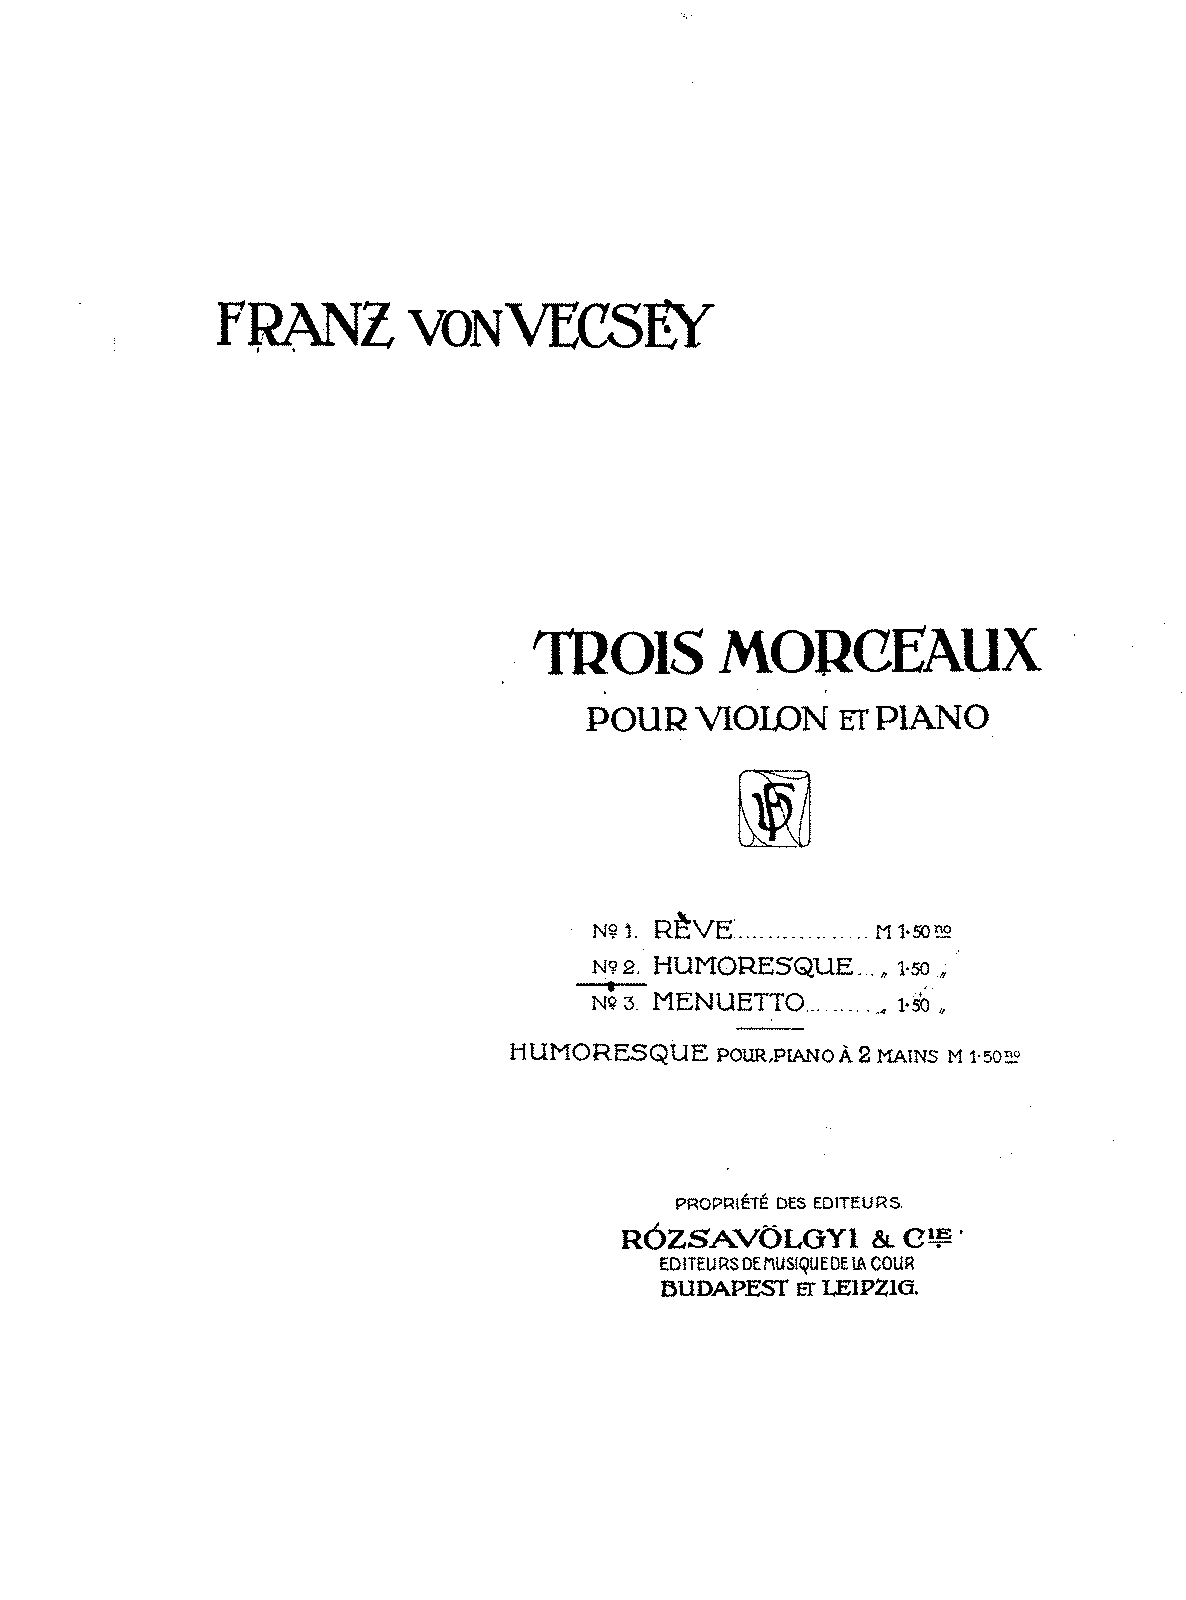 PMLP97429-Vecsey - Humoresque Violin and Piano.pdf